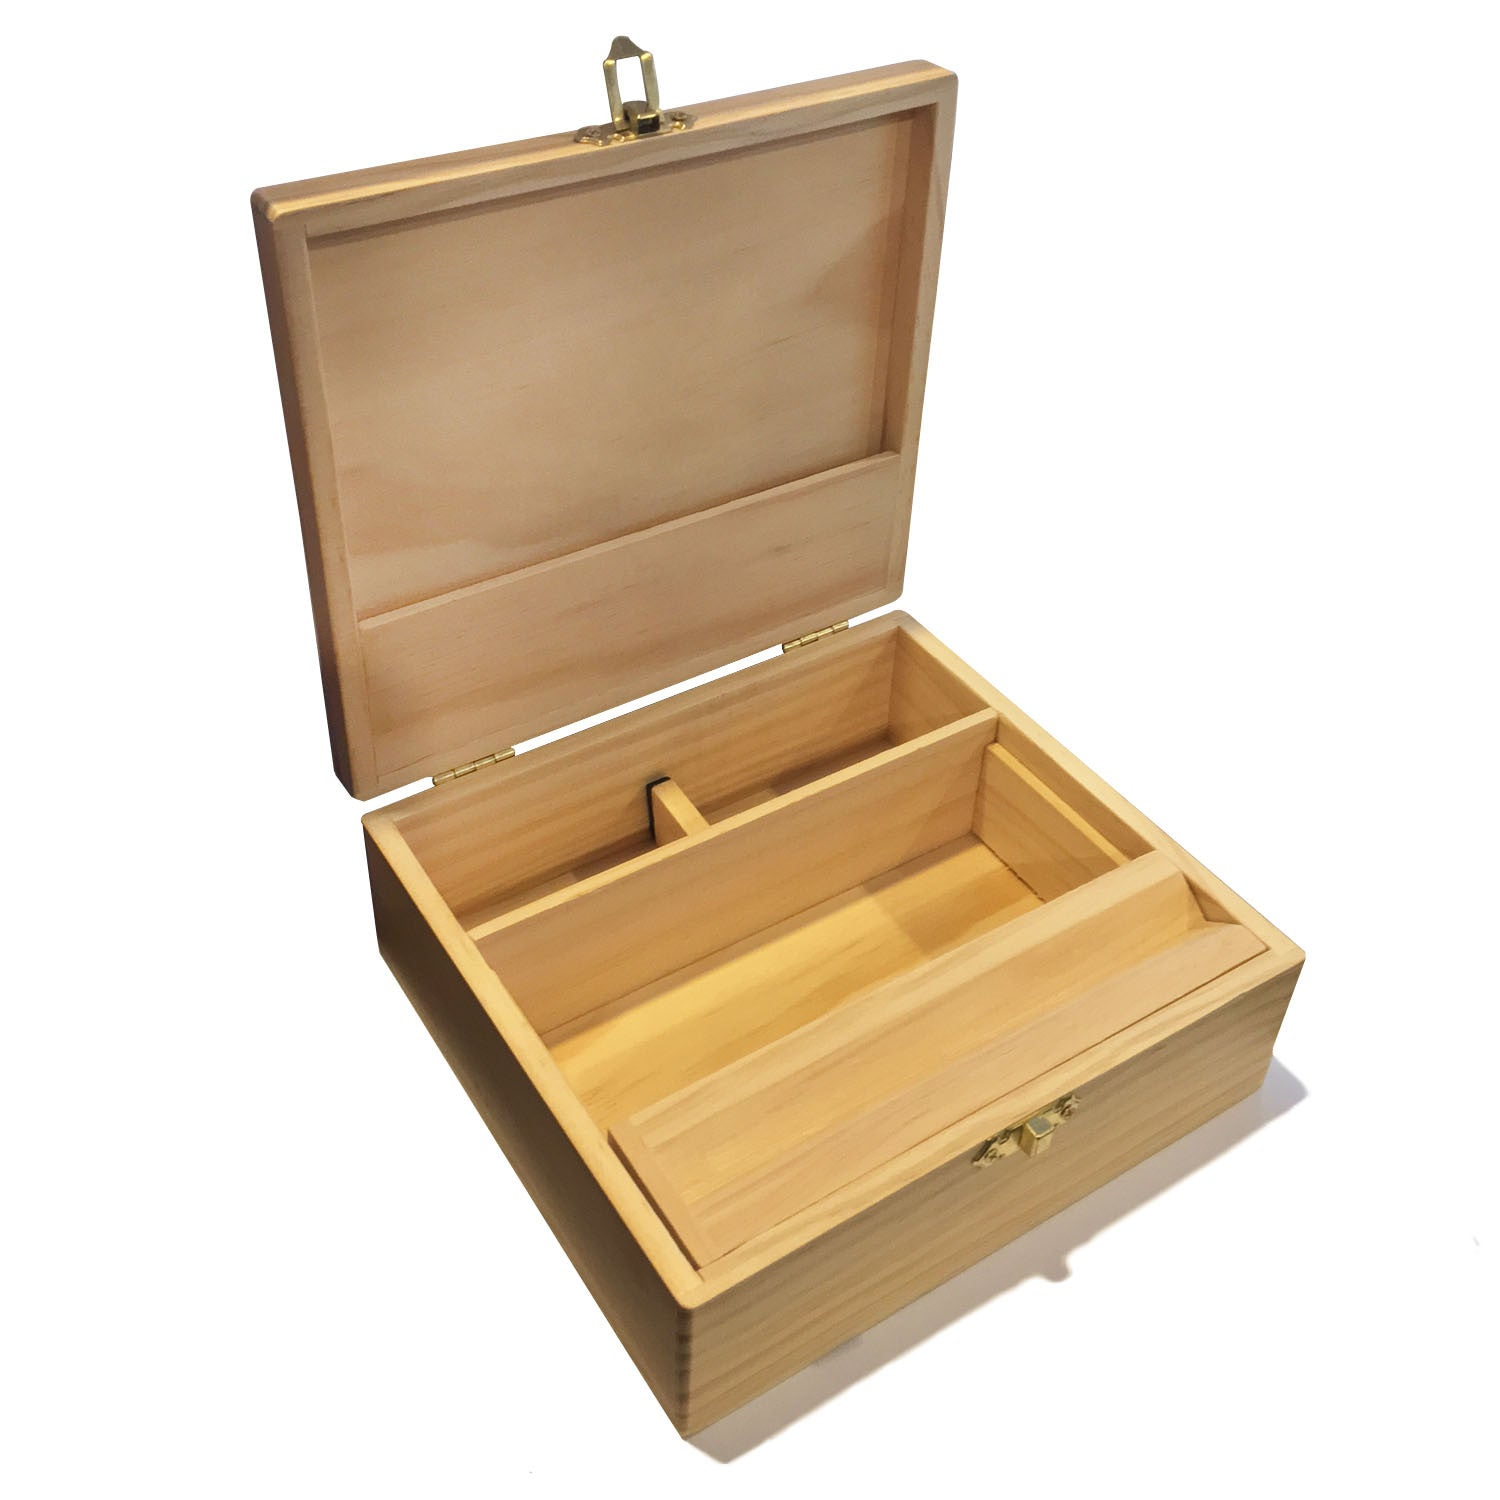 Large Wooden Storage Box W/ Latching Lid and Rolling Jig